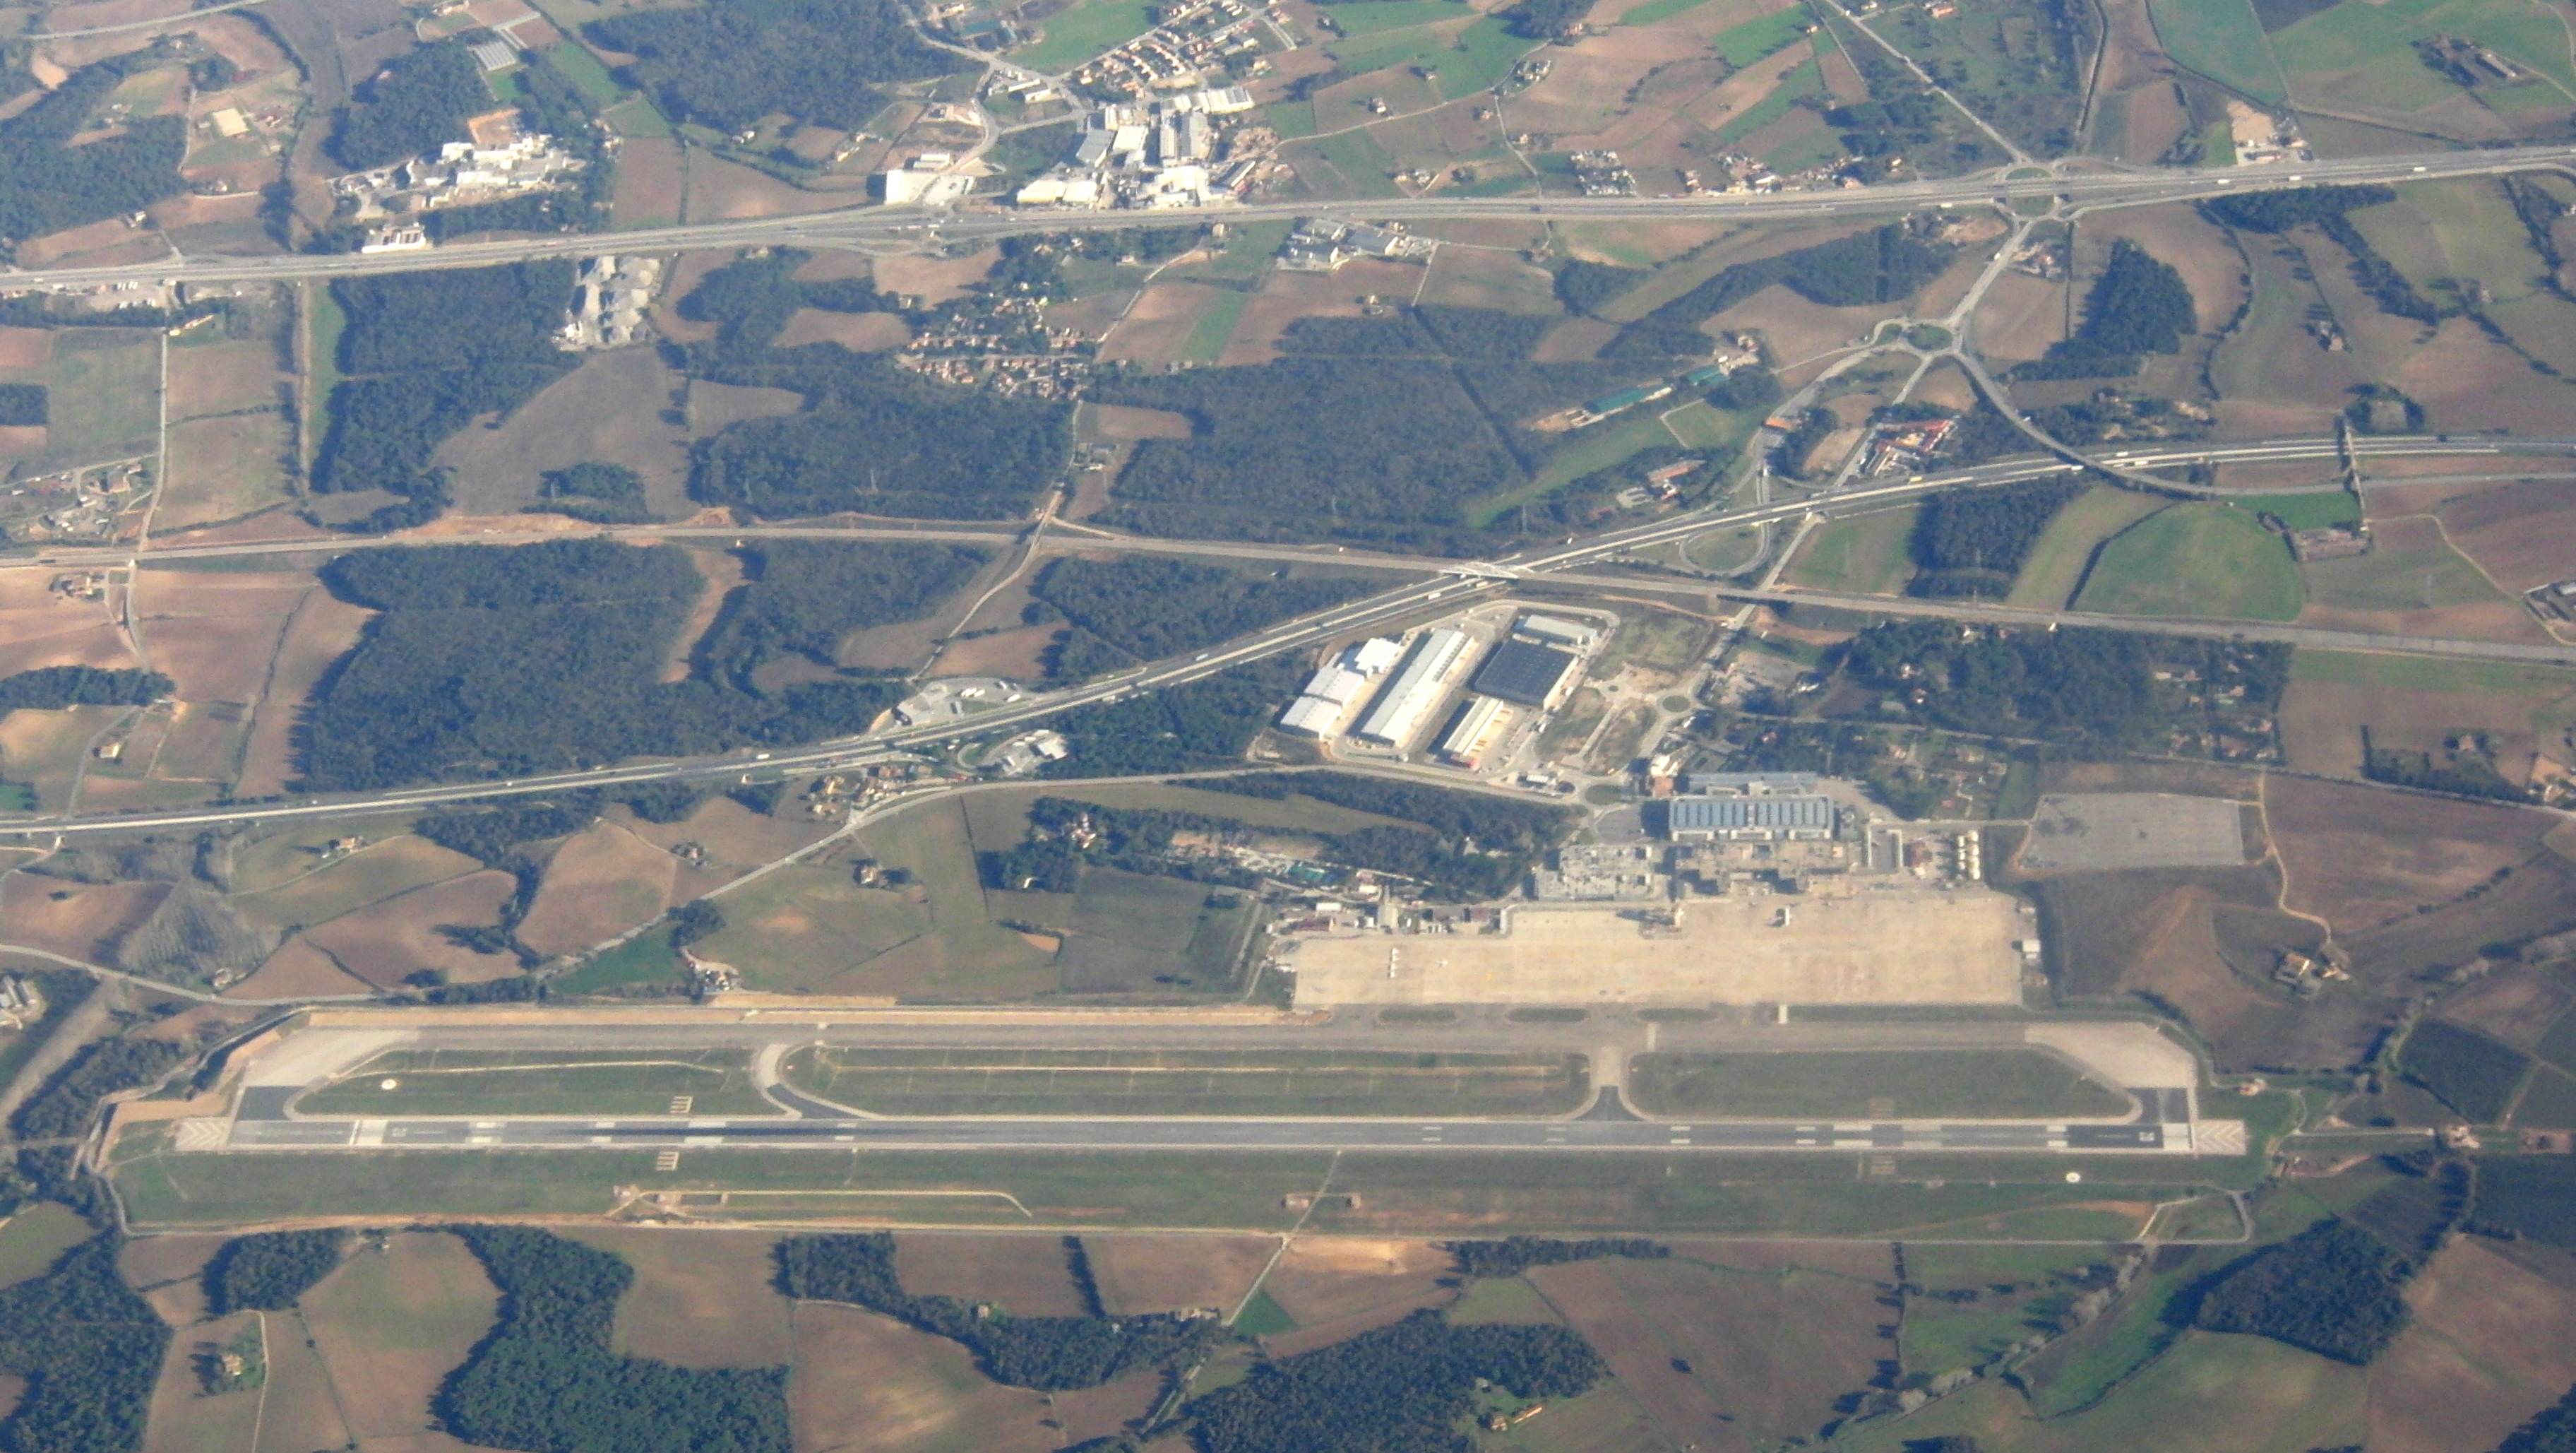 https://es.m.wikipedia.org/wiki/Archivo:Girona-Costa_Brava_Airport_-_View_from_plane.JPG